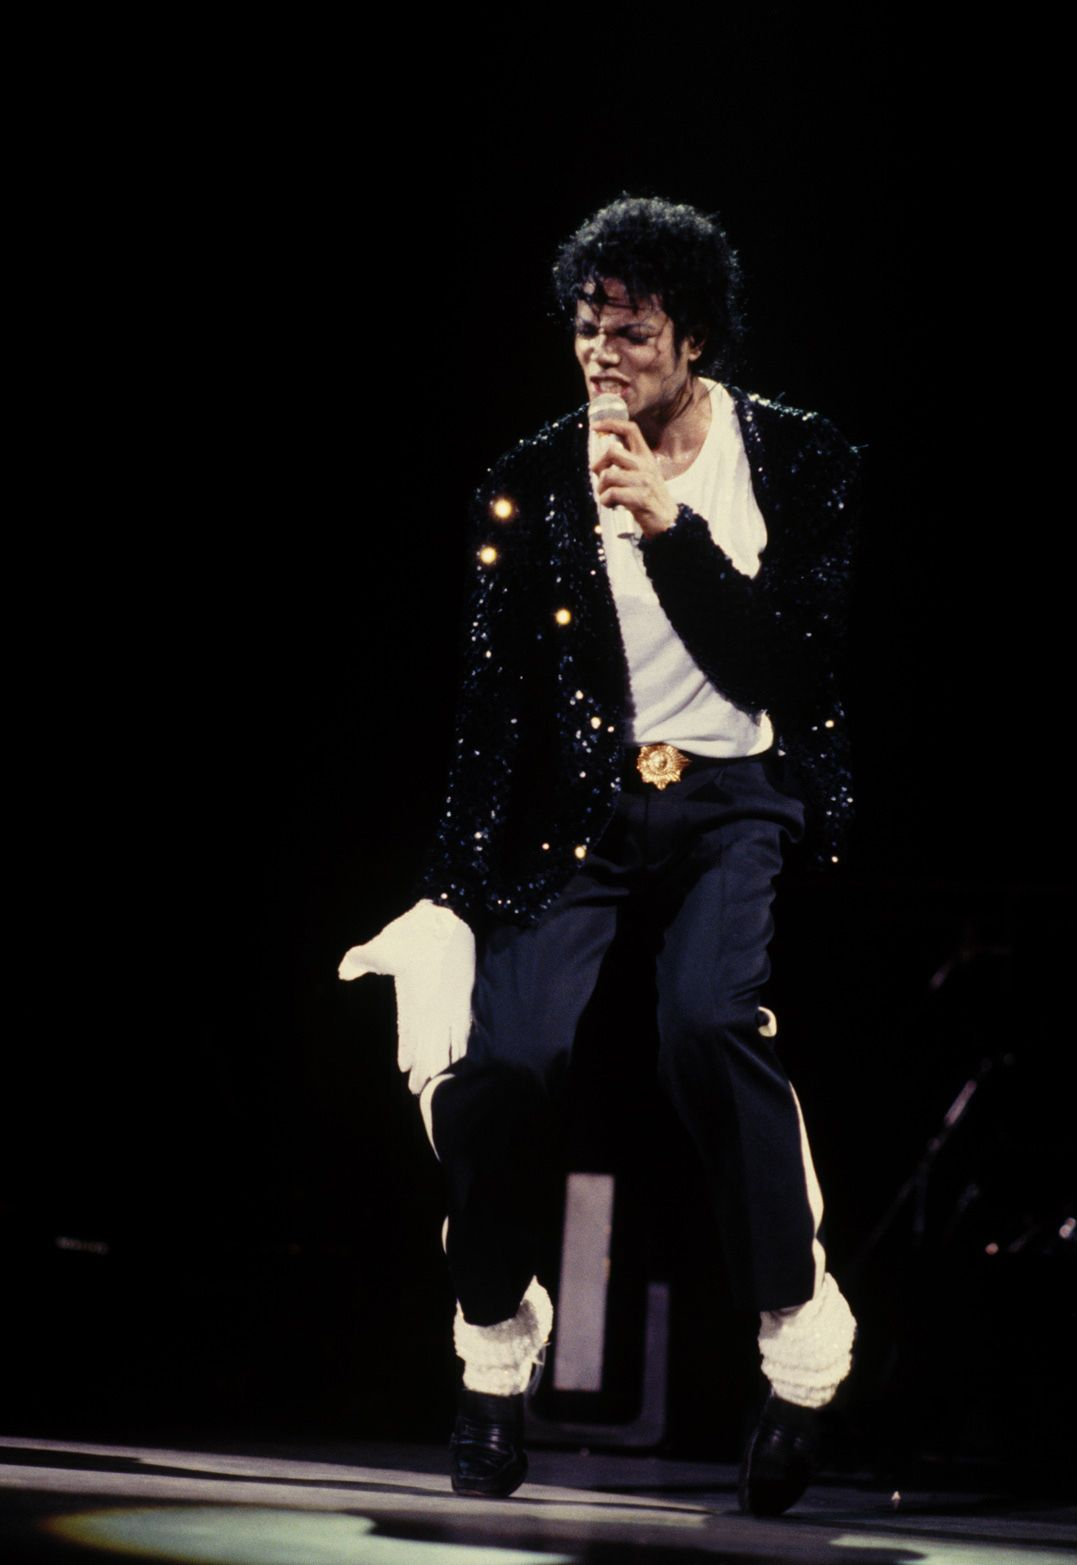 Michael Jackson Wallpapers Ultra High Quality Wallpapers   HD ...